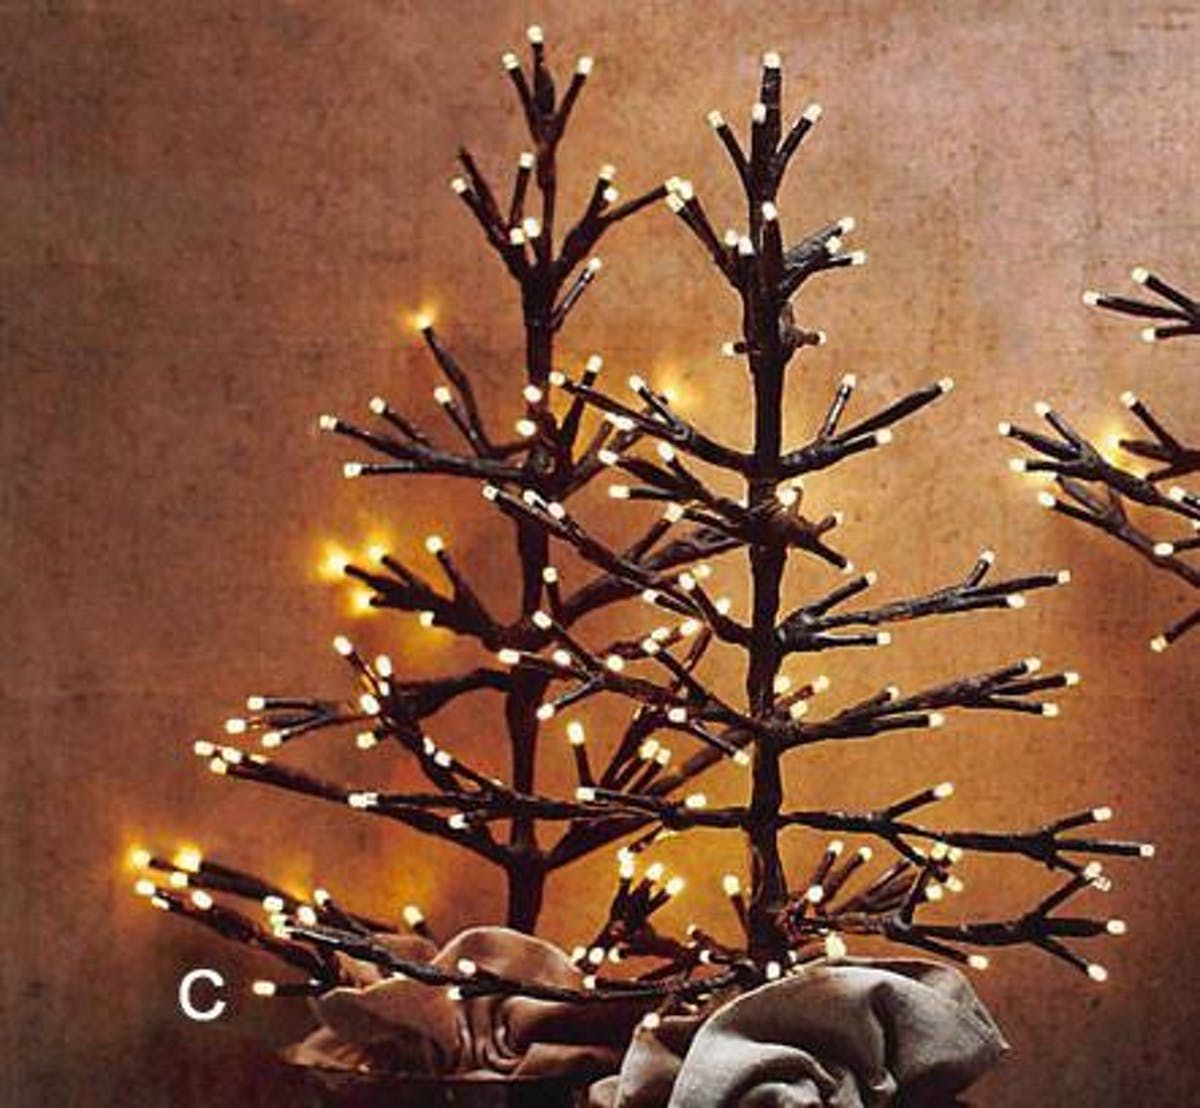 roost tabletop lighted tree lighted treeschristmas lightschristmas itemslow voltage